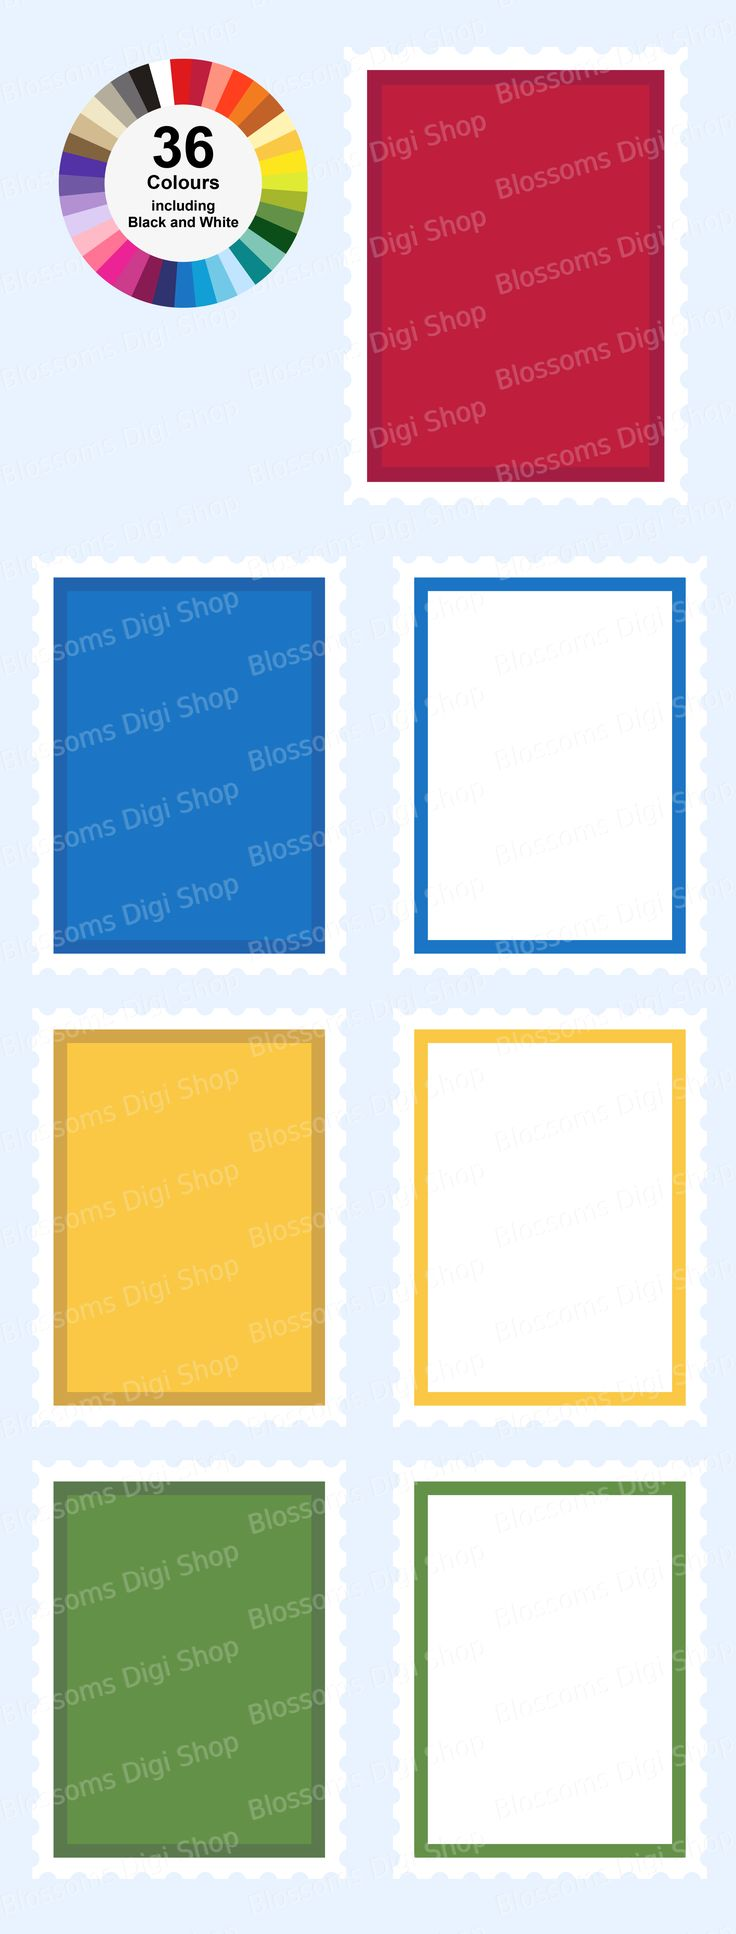 A single image clipart set in 2 styles of 36 colours each. Available at Etsy for digital download. Designed for personal and commercial use.